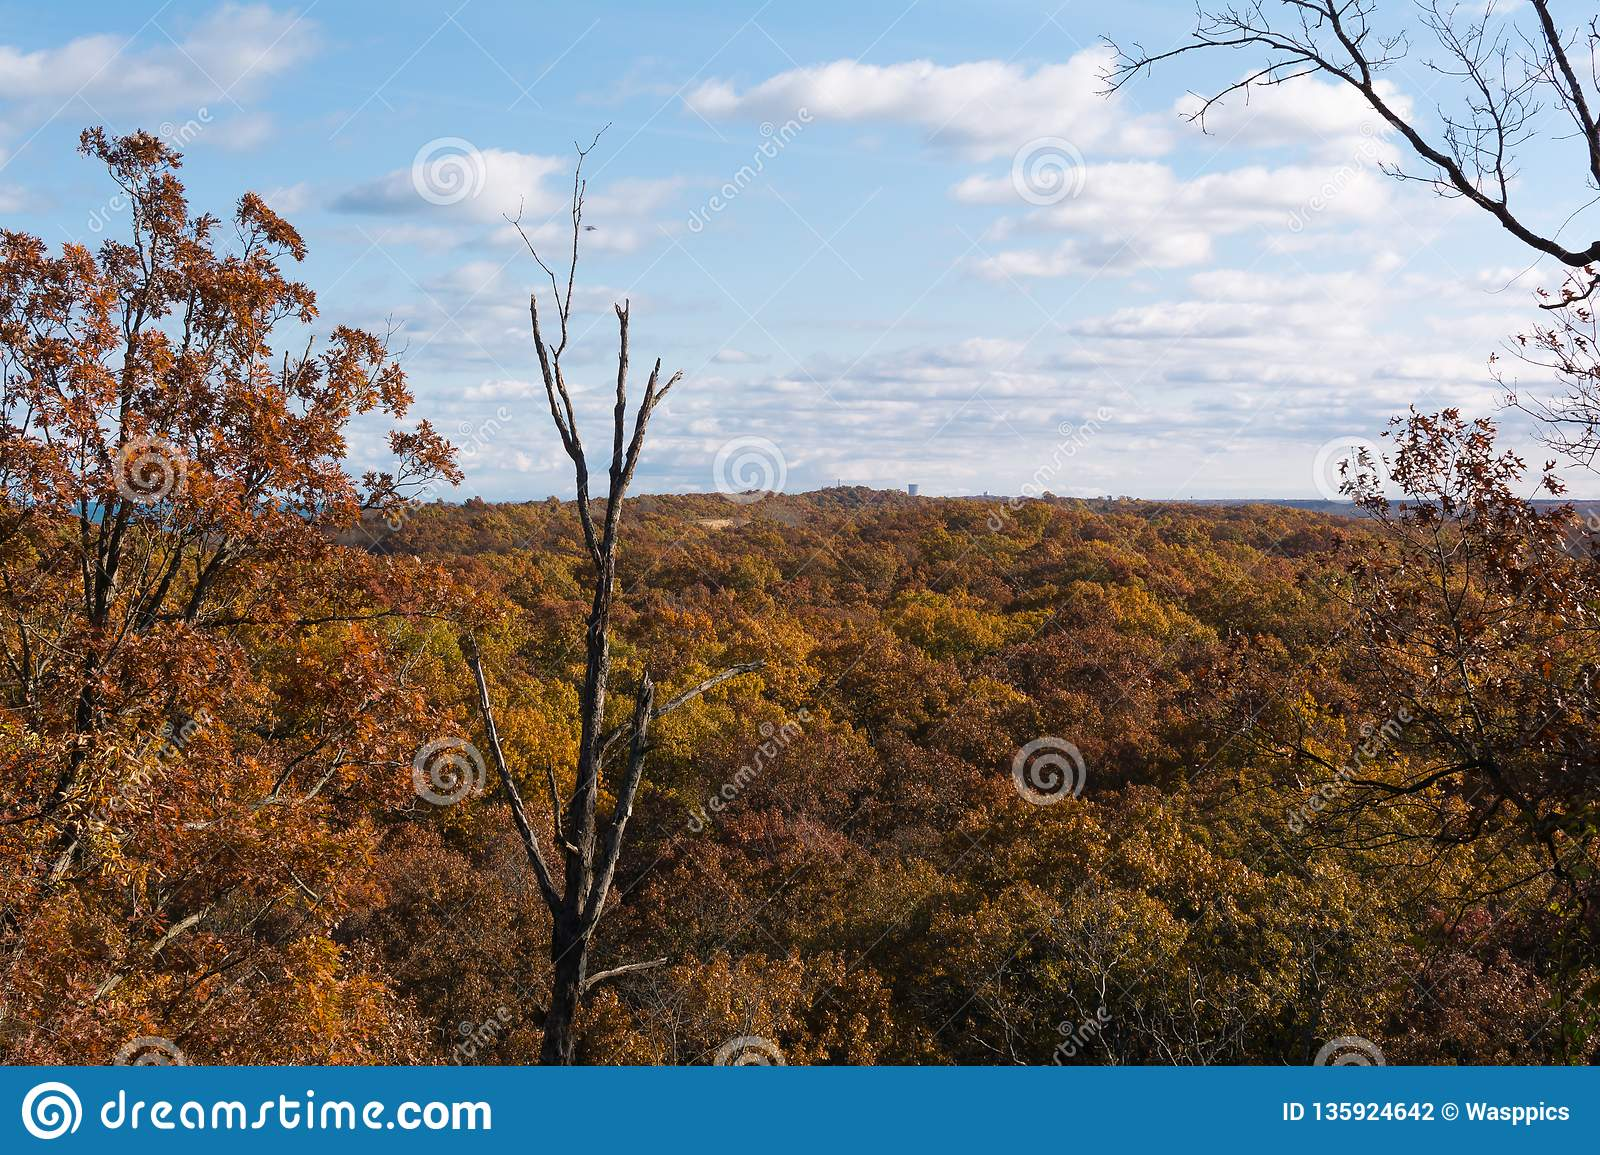 Autumn in Indiana Dunes State Park.